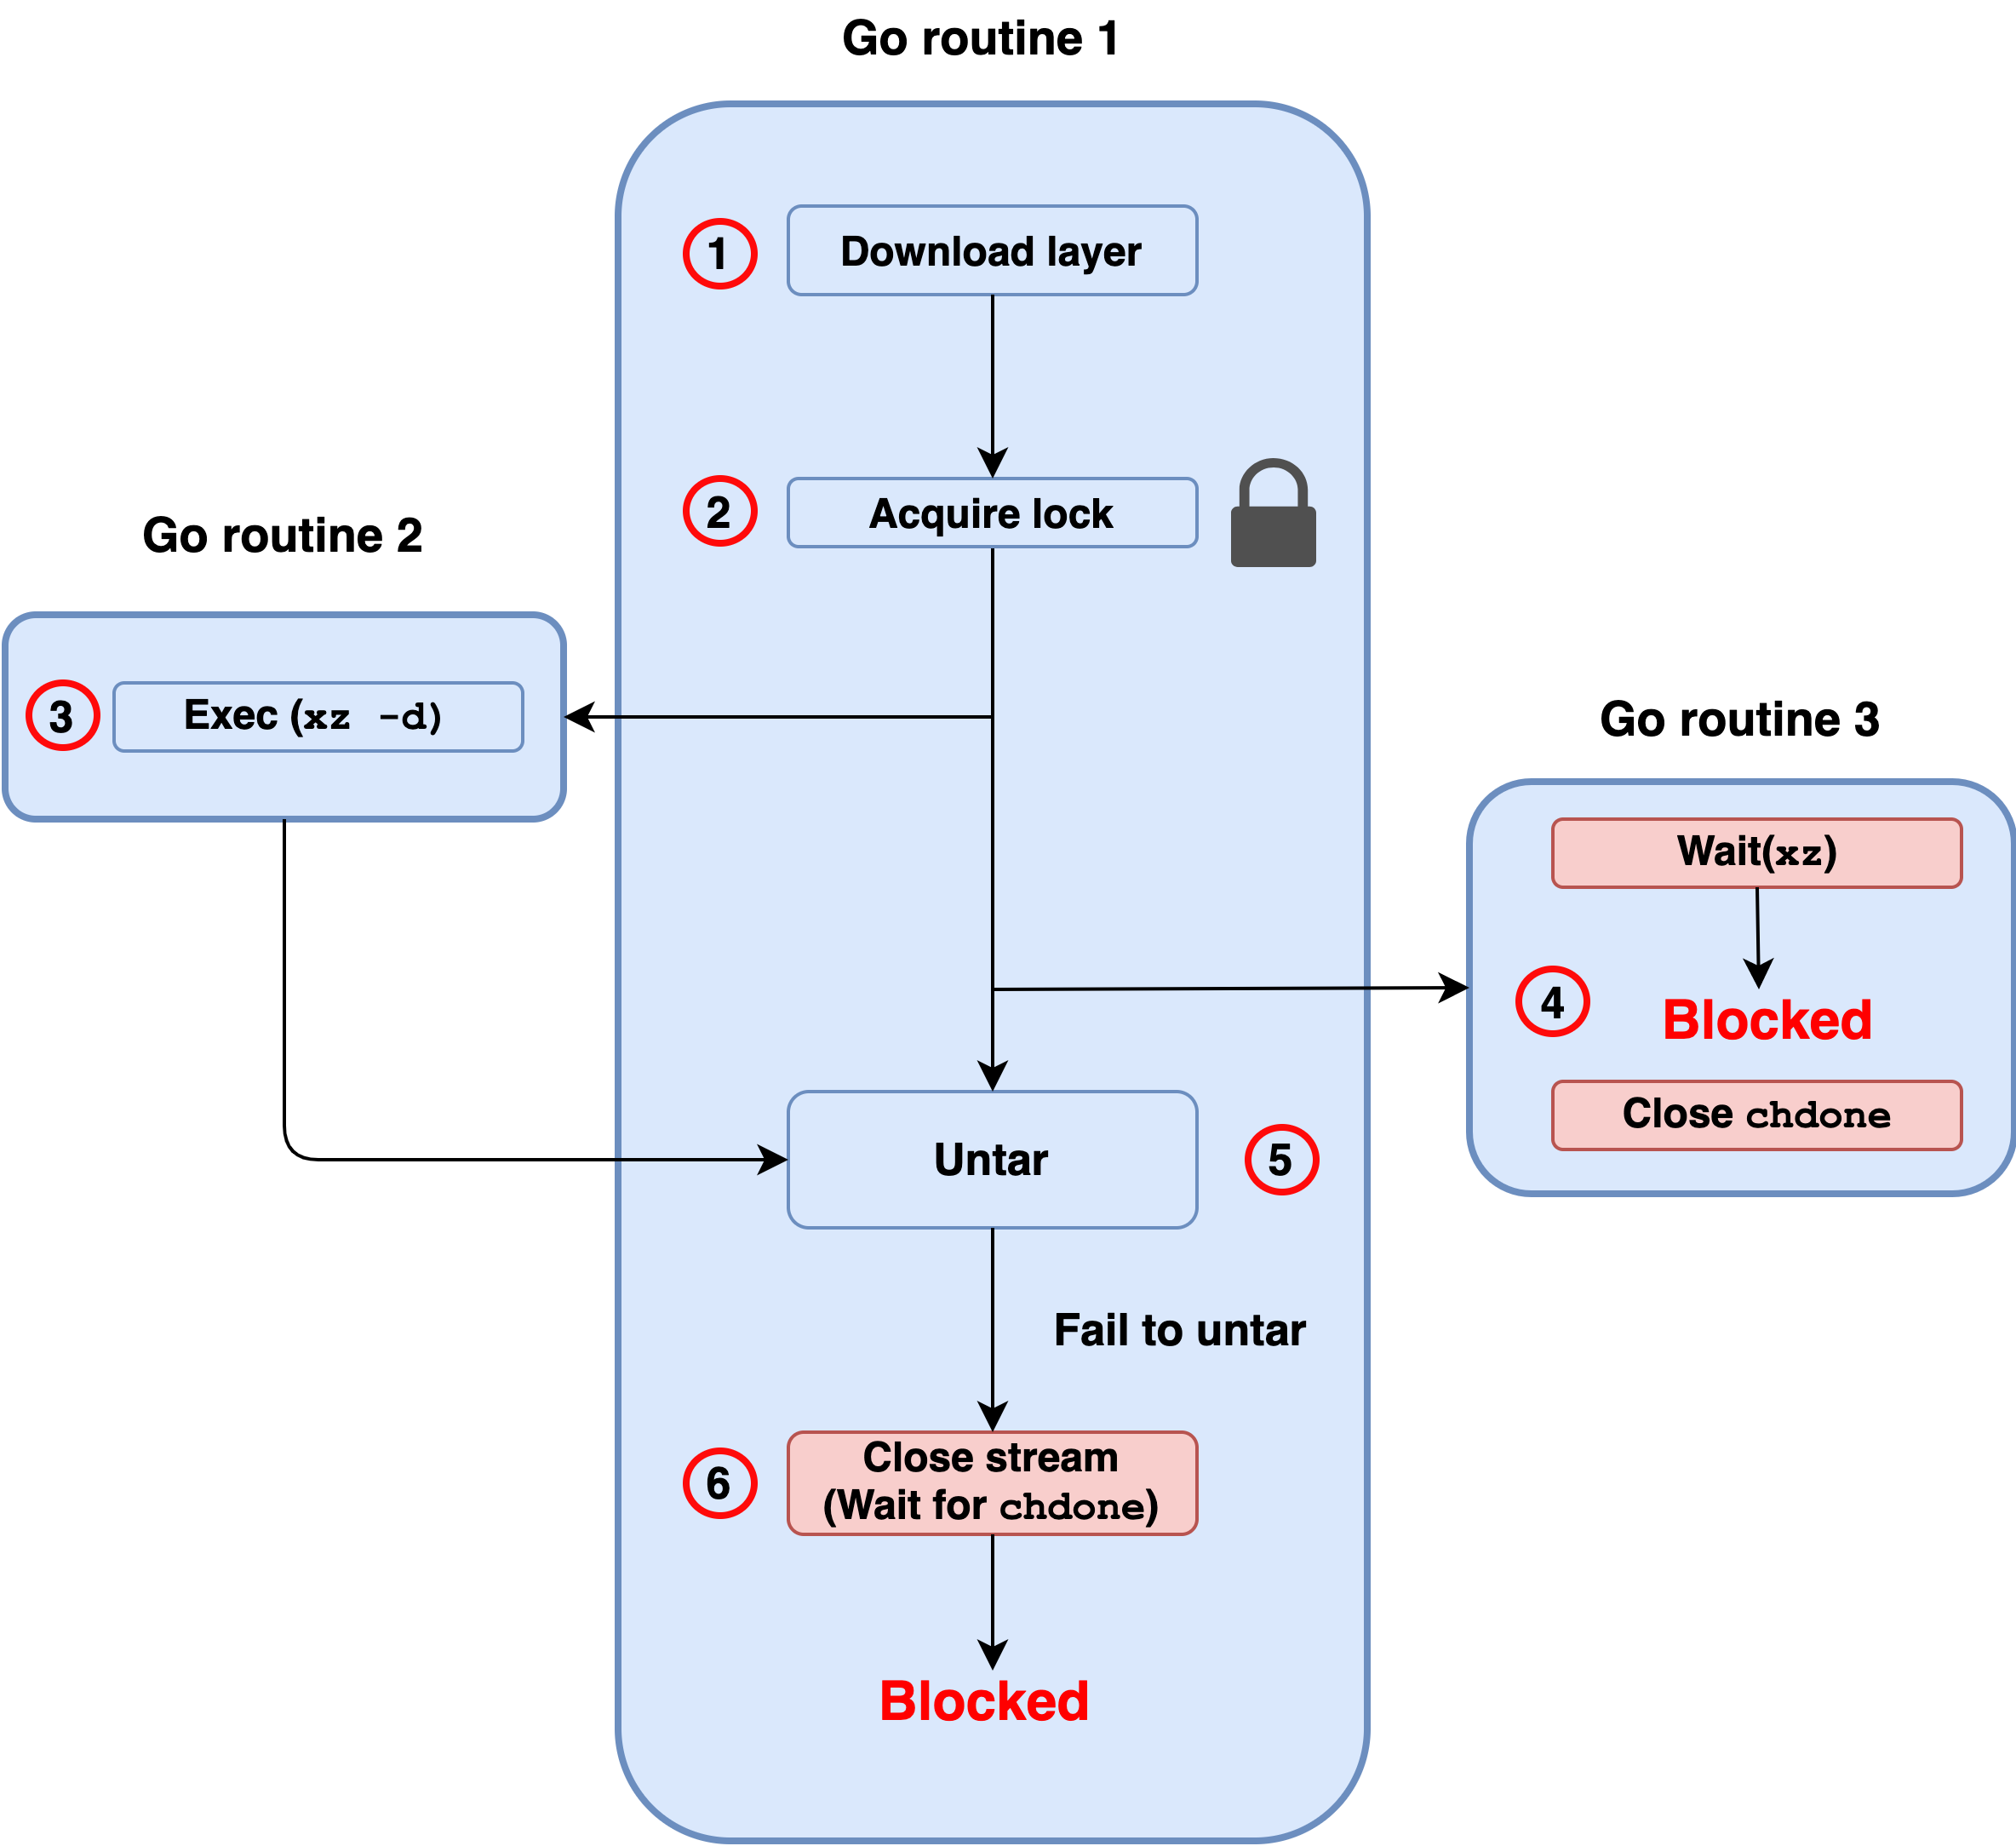 Vulnerability execution flow for CVE-2021-20291: 1) download layer in Go routine 1, 2) acquire lock, 3) move to Go routine 2 and Exec(xz -d), 4) in Go routine 3, Wait(xz), blocked, Close chdone, 5) Untar, fail to untar, 6) Close stream (wait for chdone), blocked